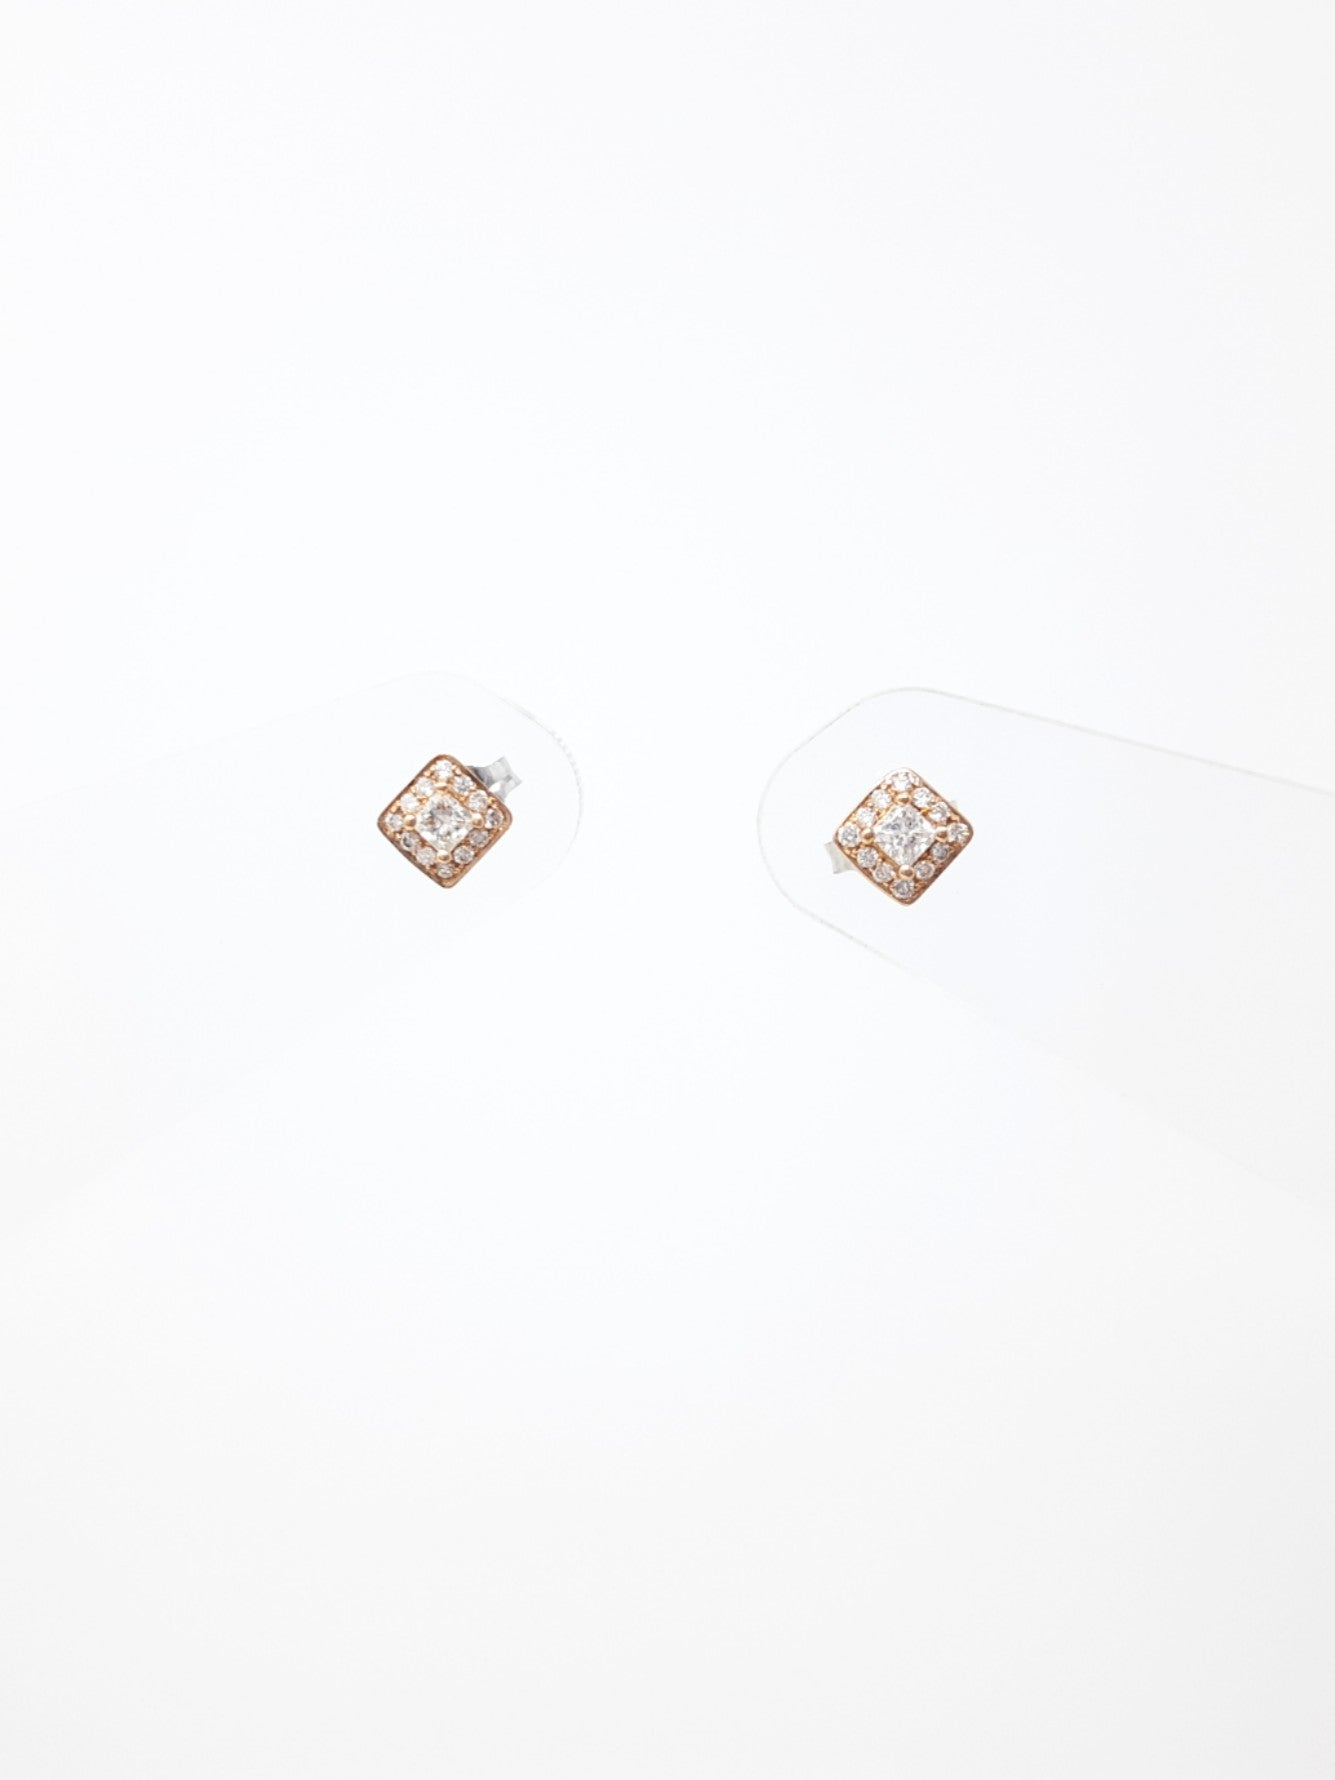 Two-Tone Canadian Diamond Earrings